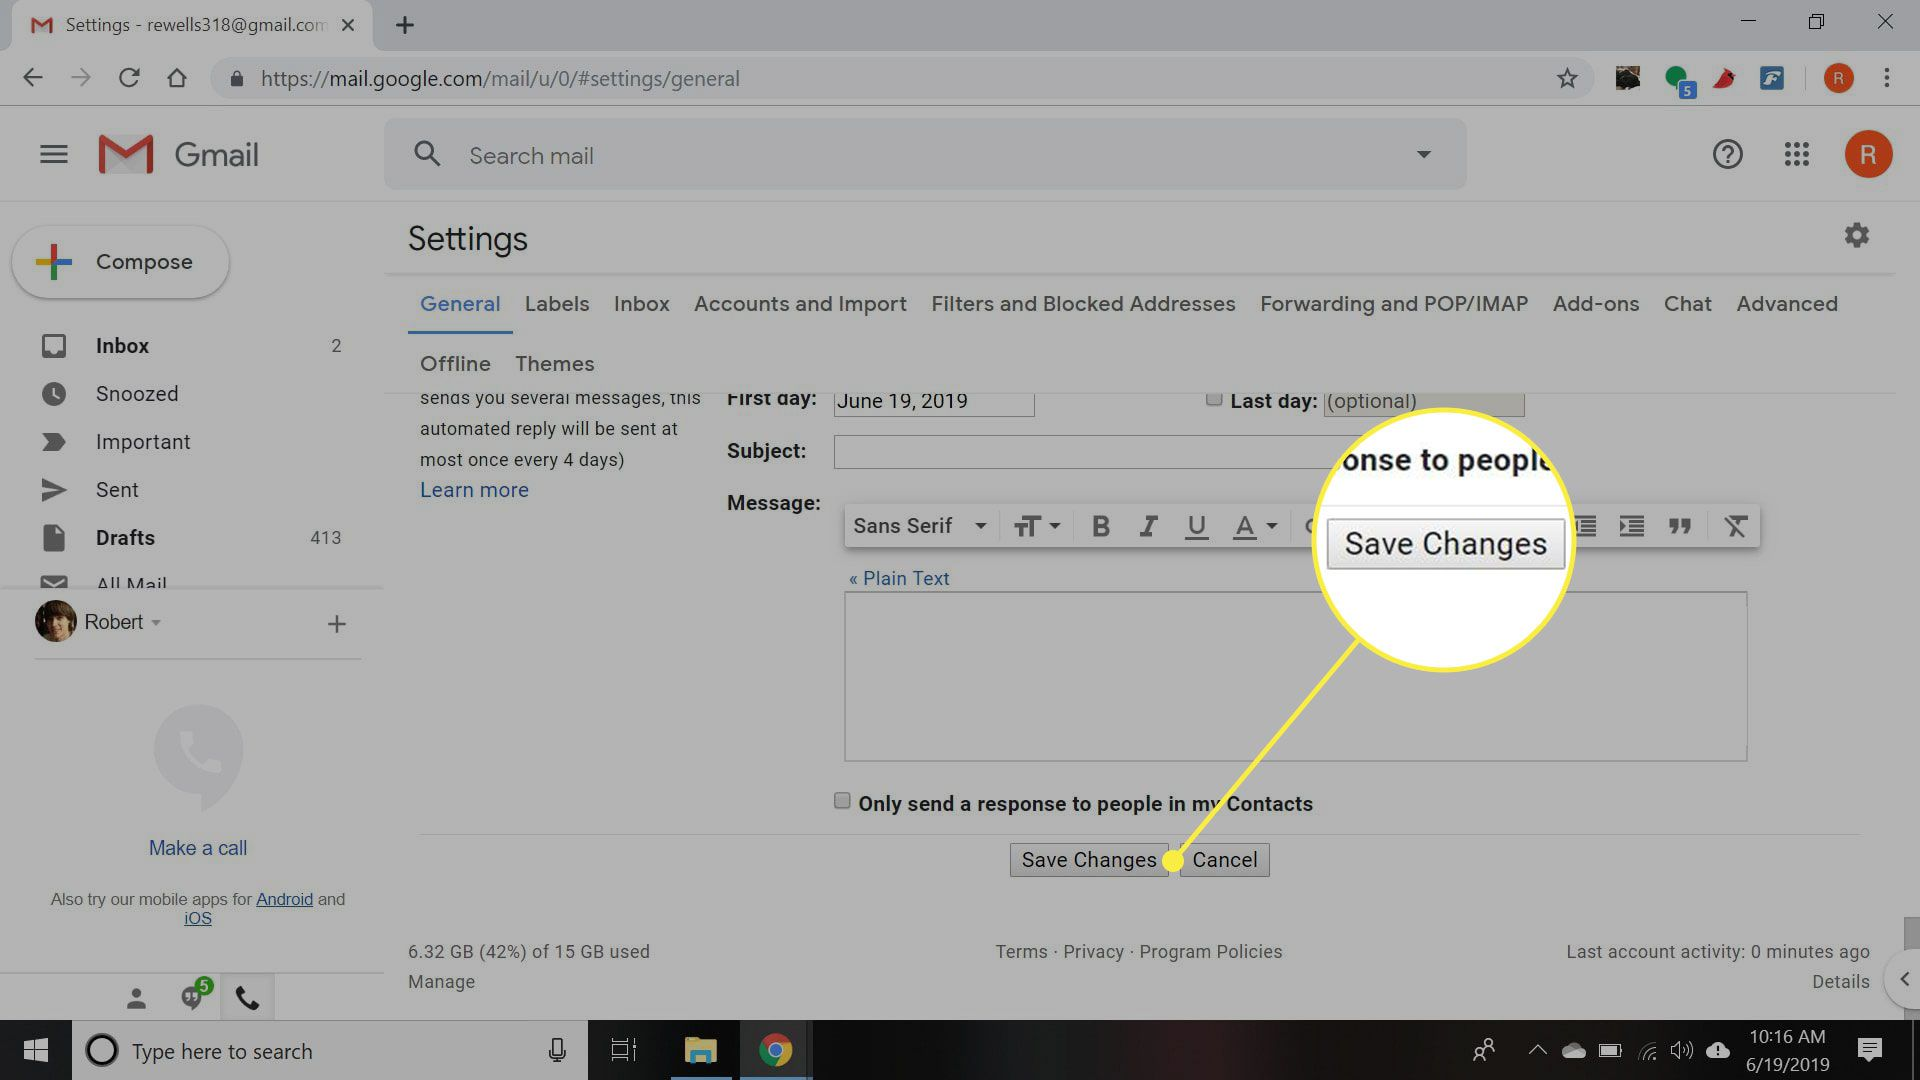 Gmail settings with the Save Changes button highlighted